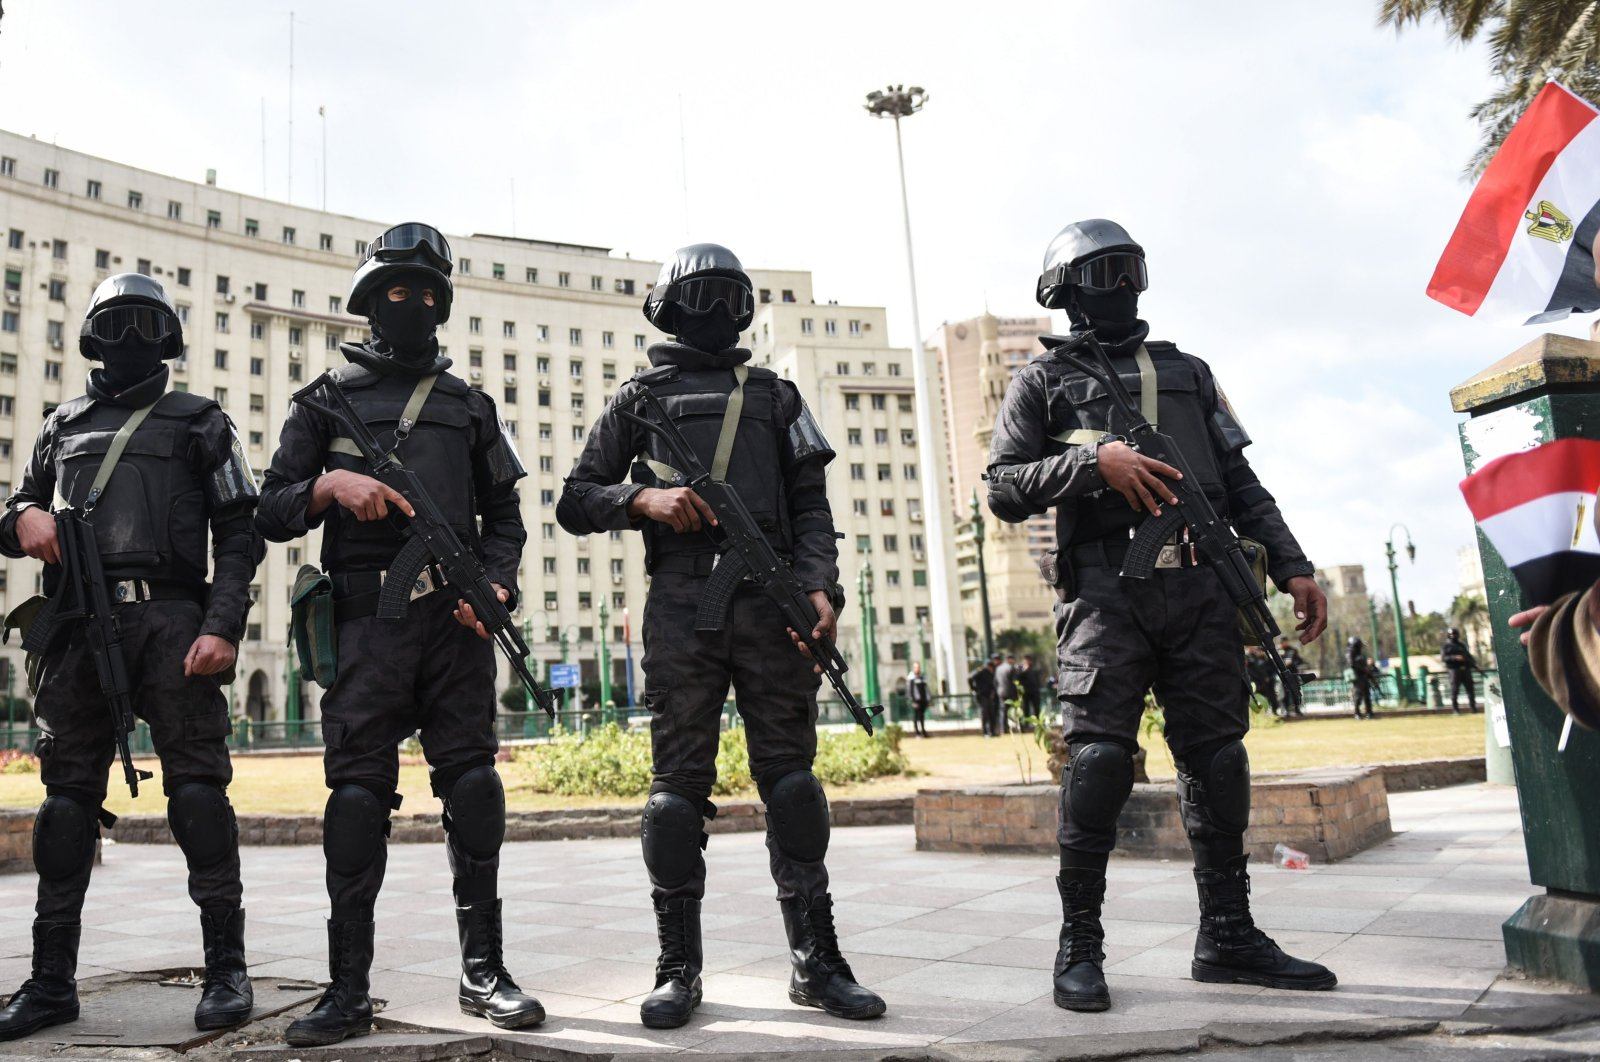 Members of the Egyptian police special forces stand guard on Cairo's landmark Tahrir Square on Jan. 25, 2016. (AFP Photo)